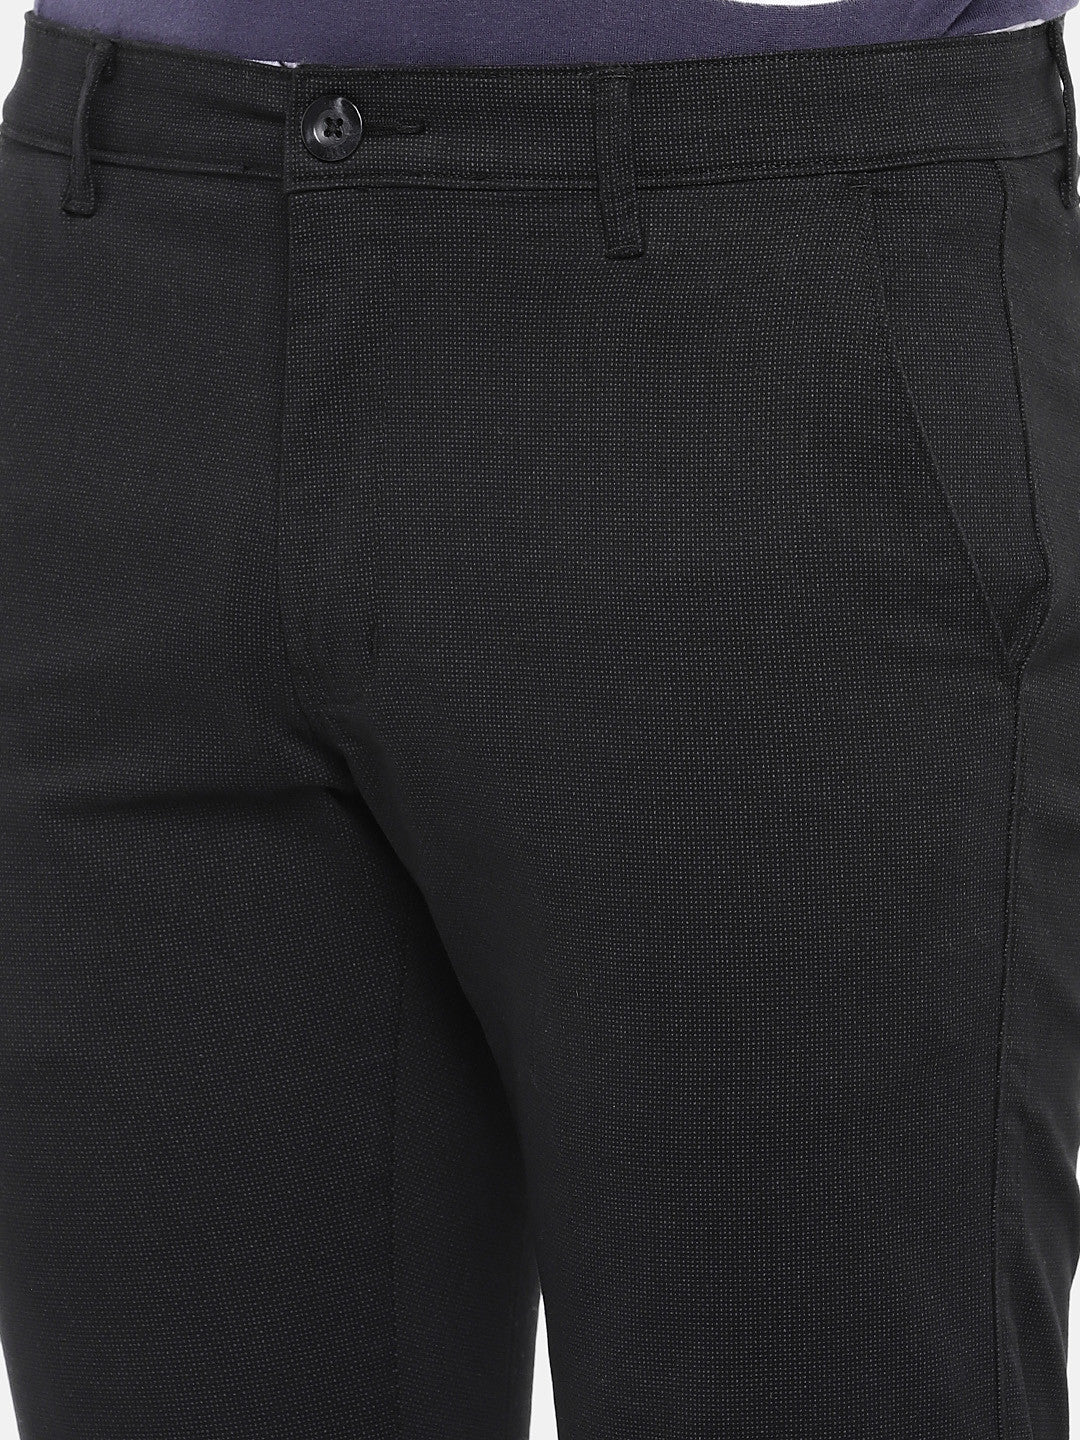 Black Regular Fit Solid Regular Trousers-5